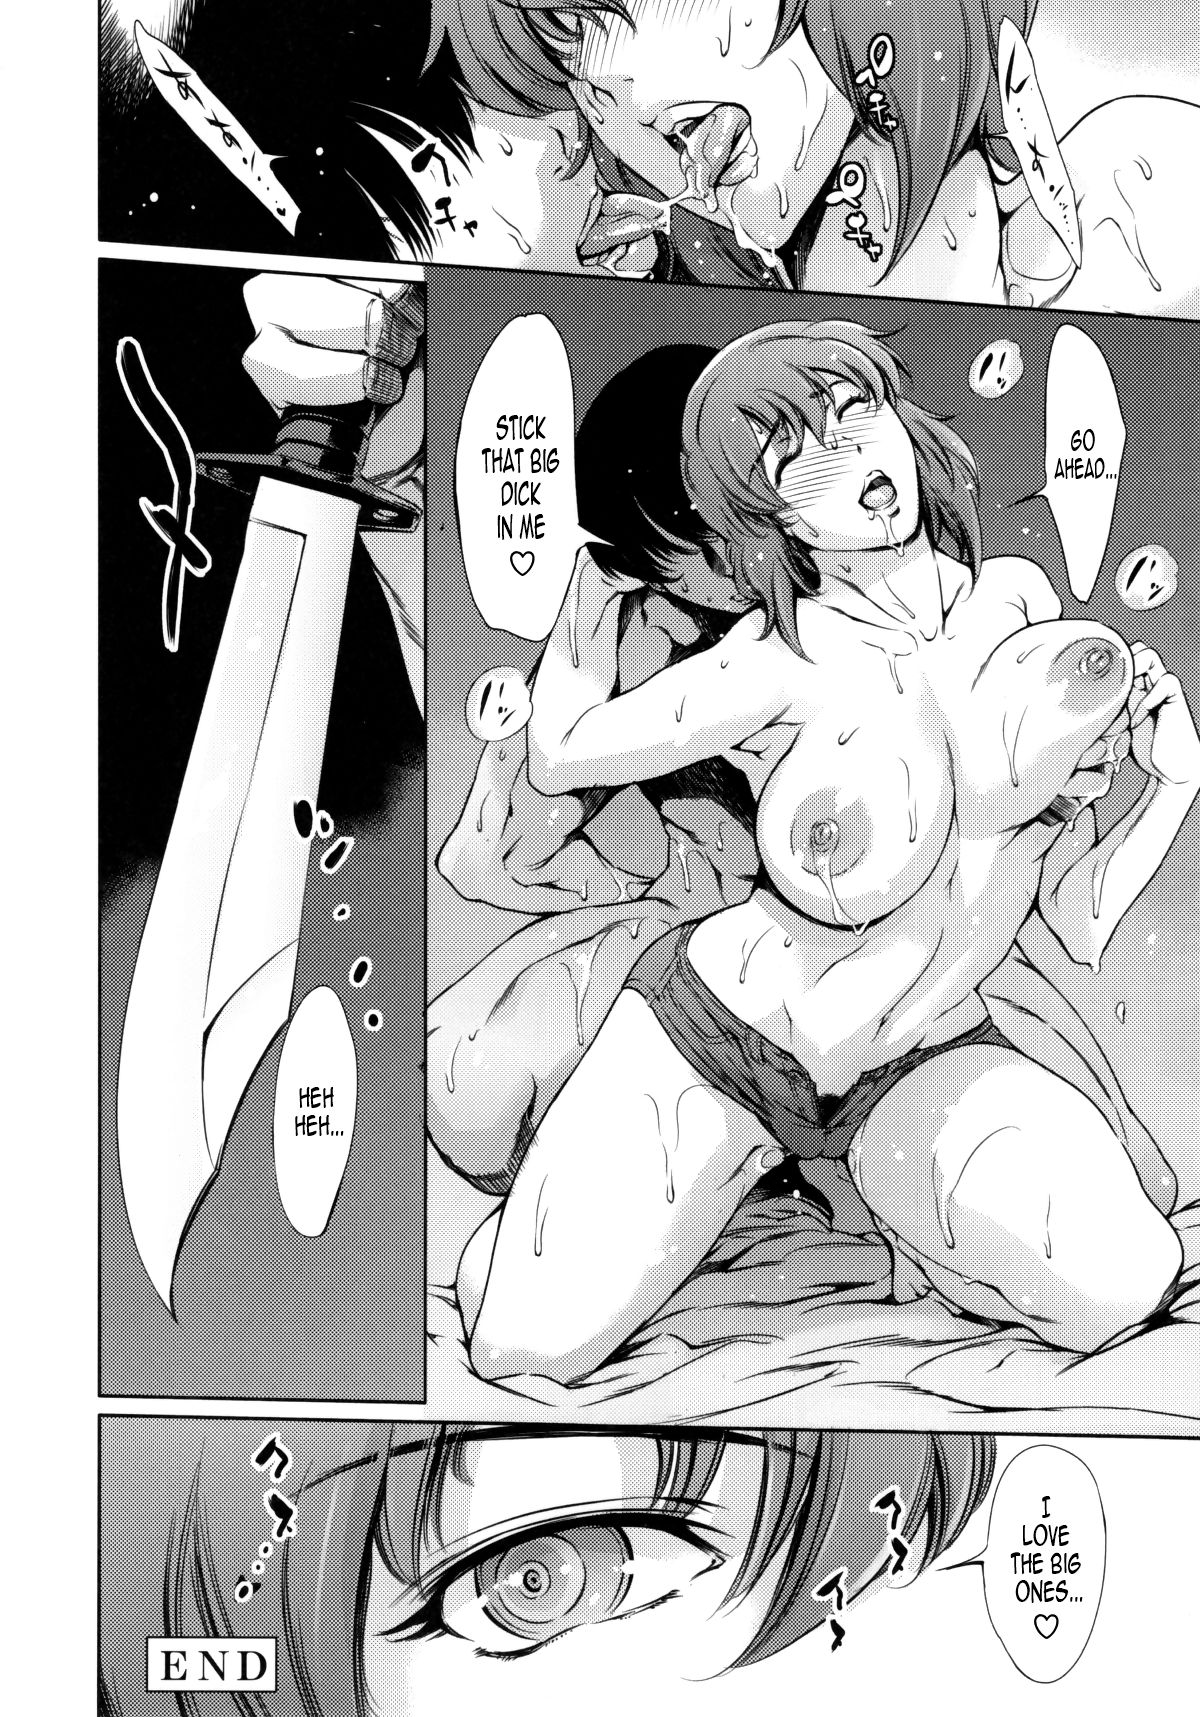 Ghost in the shell sex